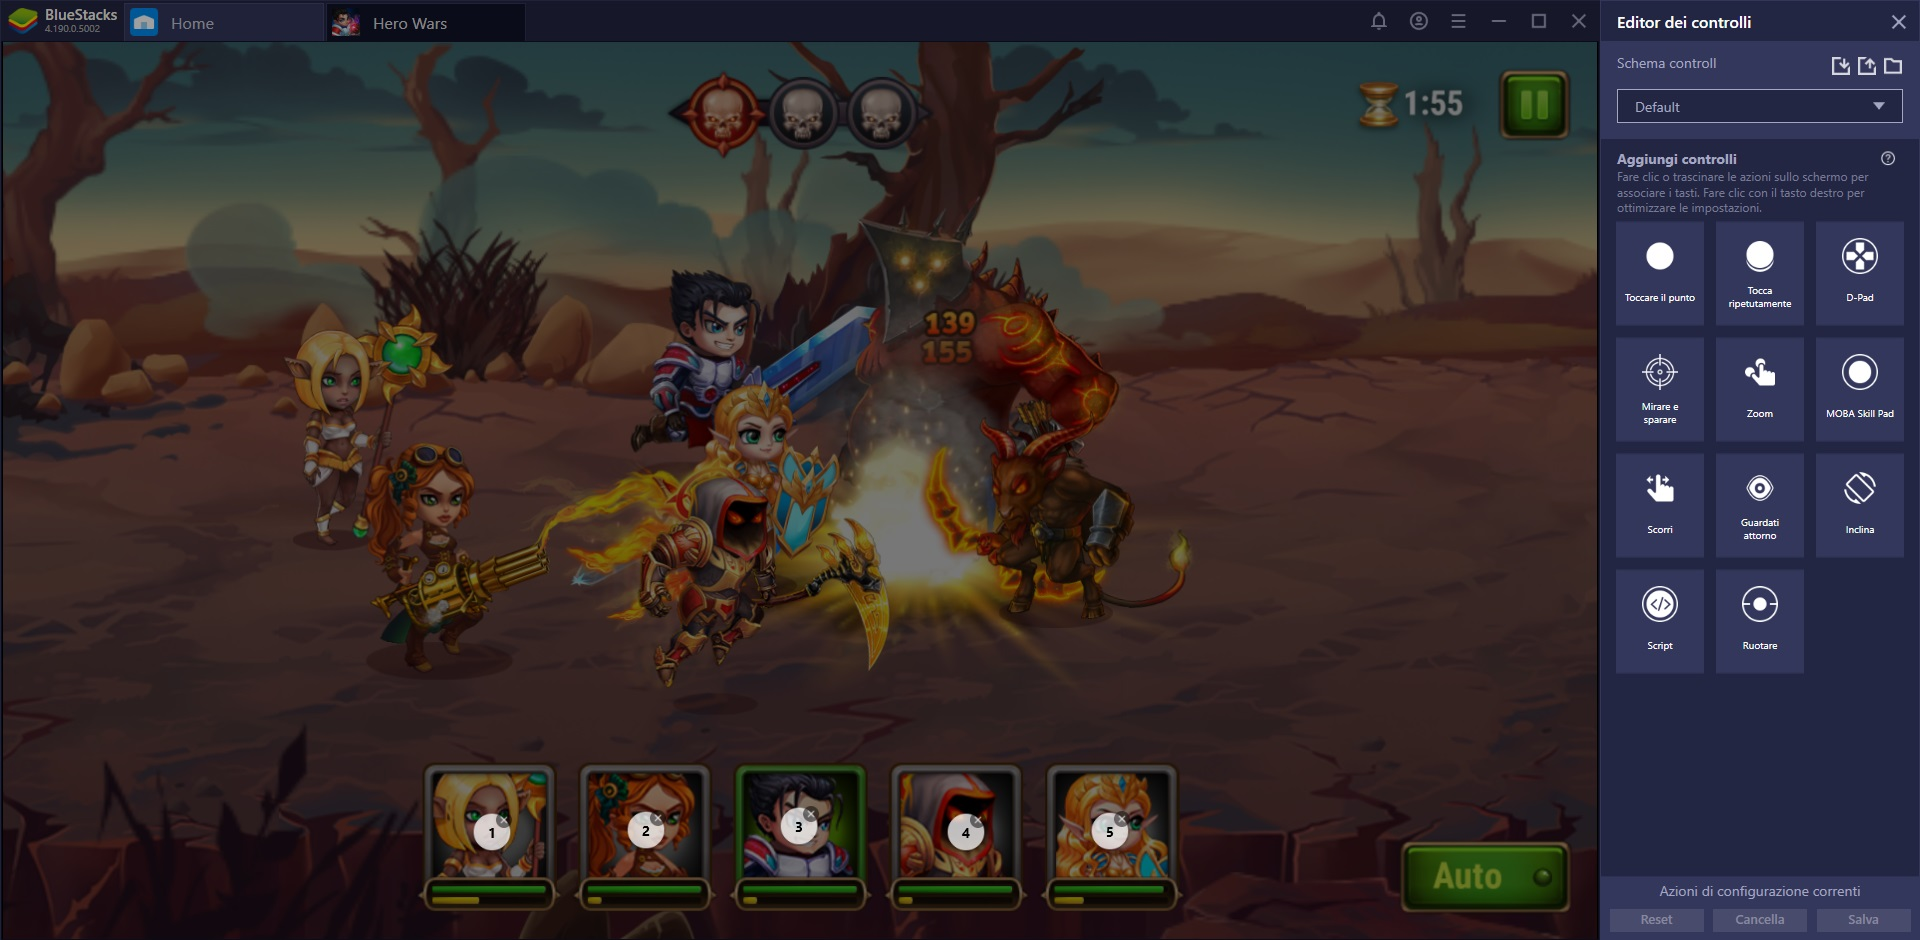 Gioca Hero Wars su PC con Bluestacks